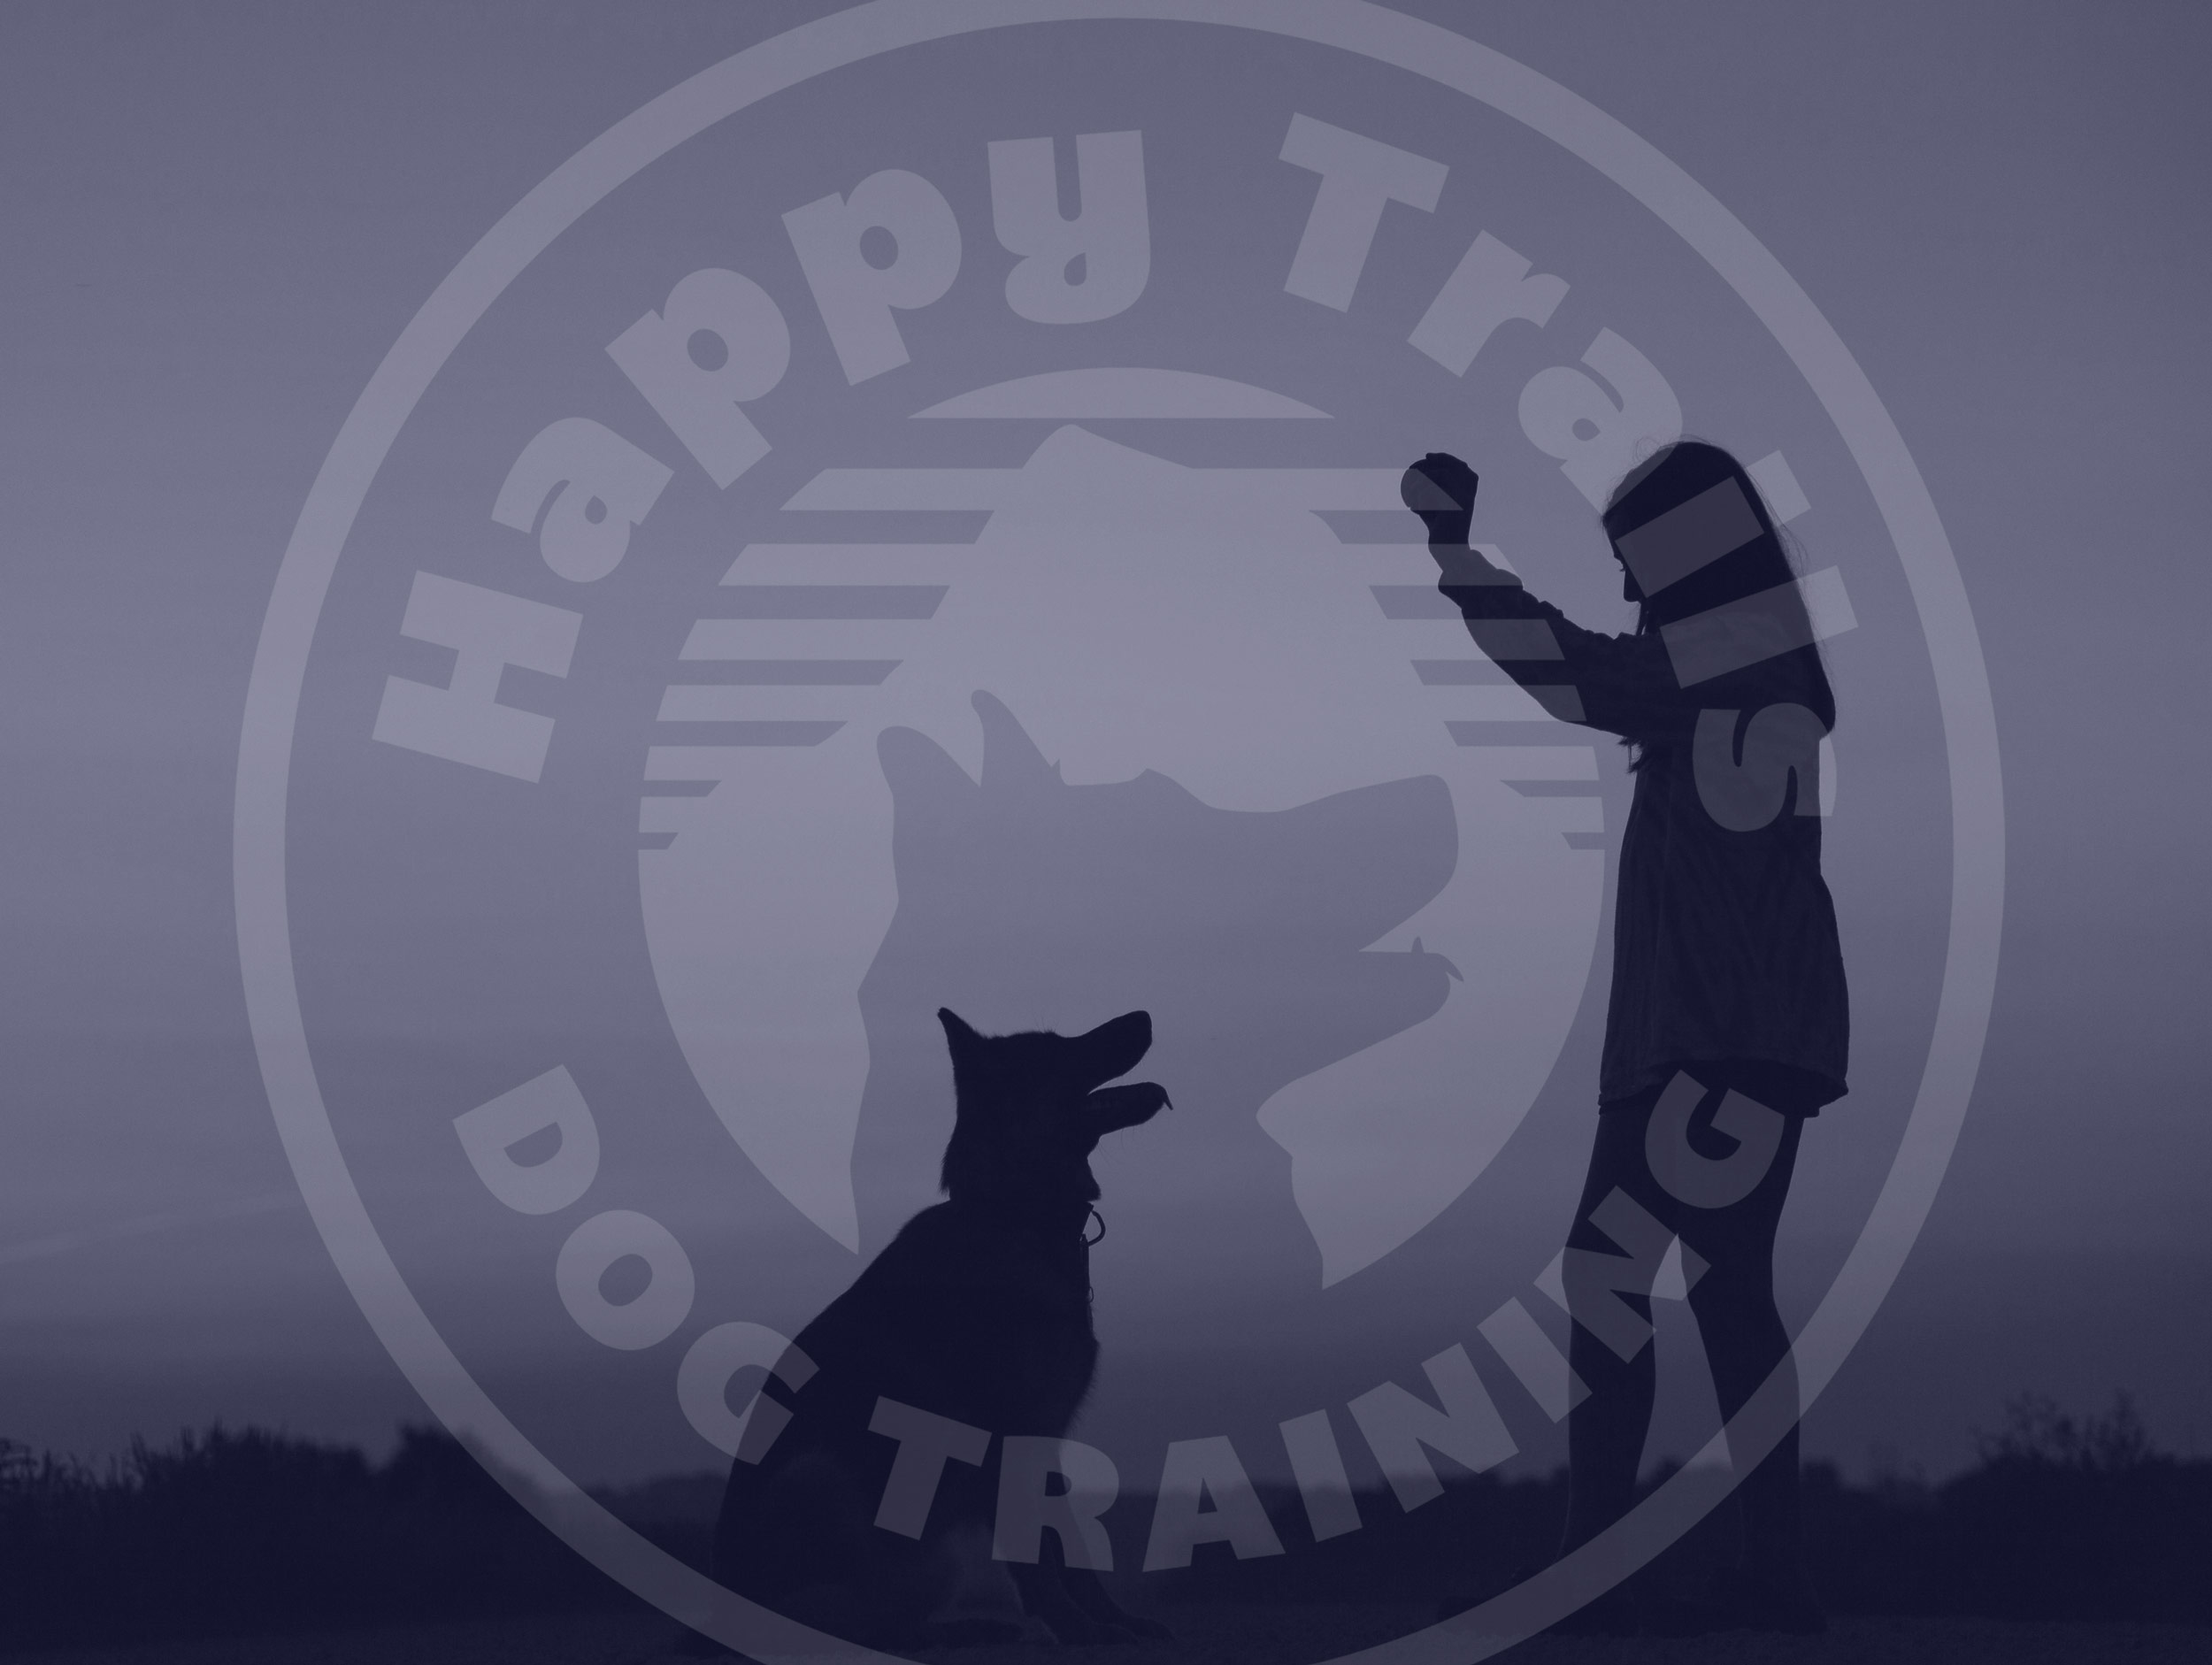 happy trails dog trainer logo design by mike hosier